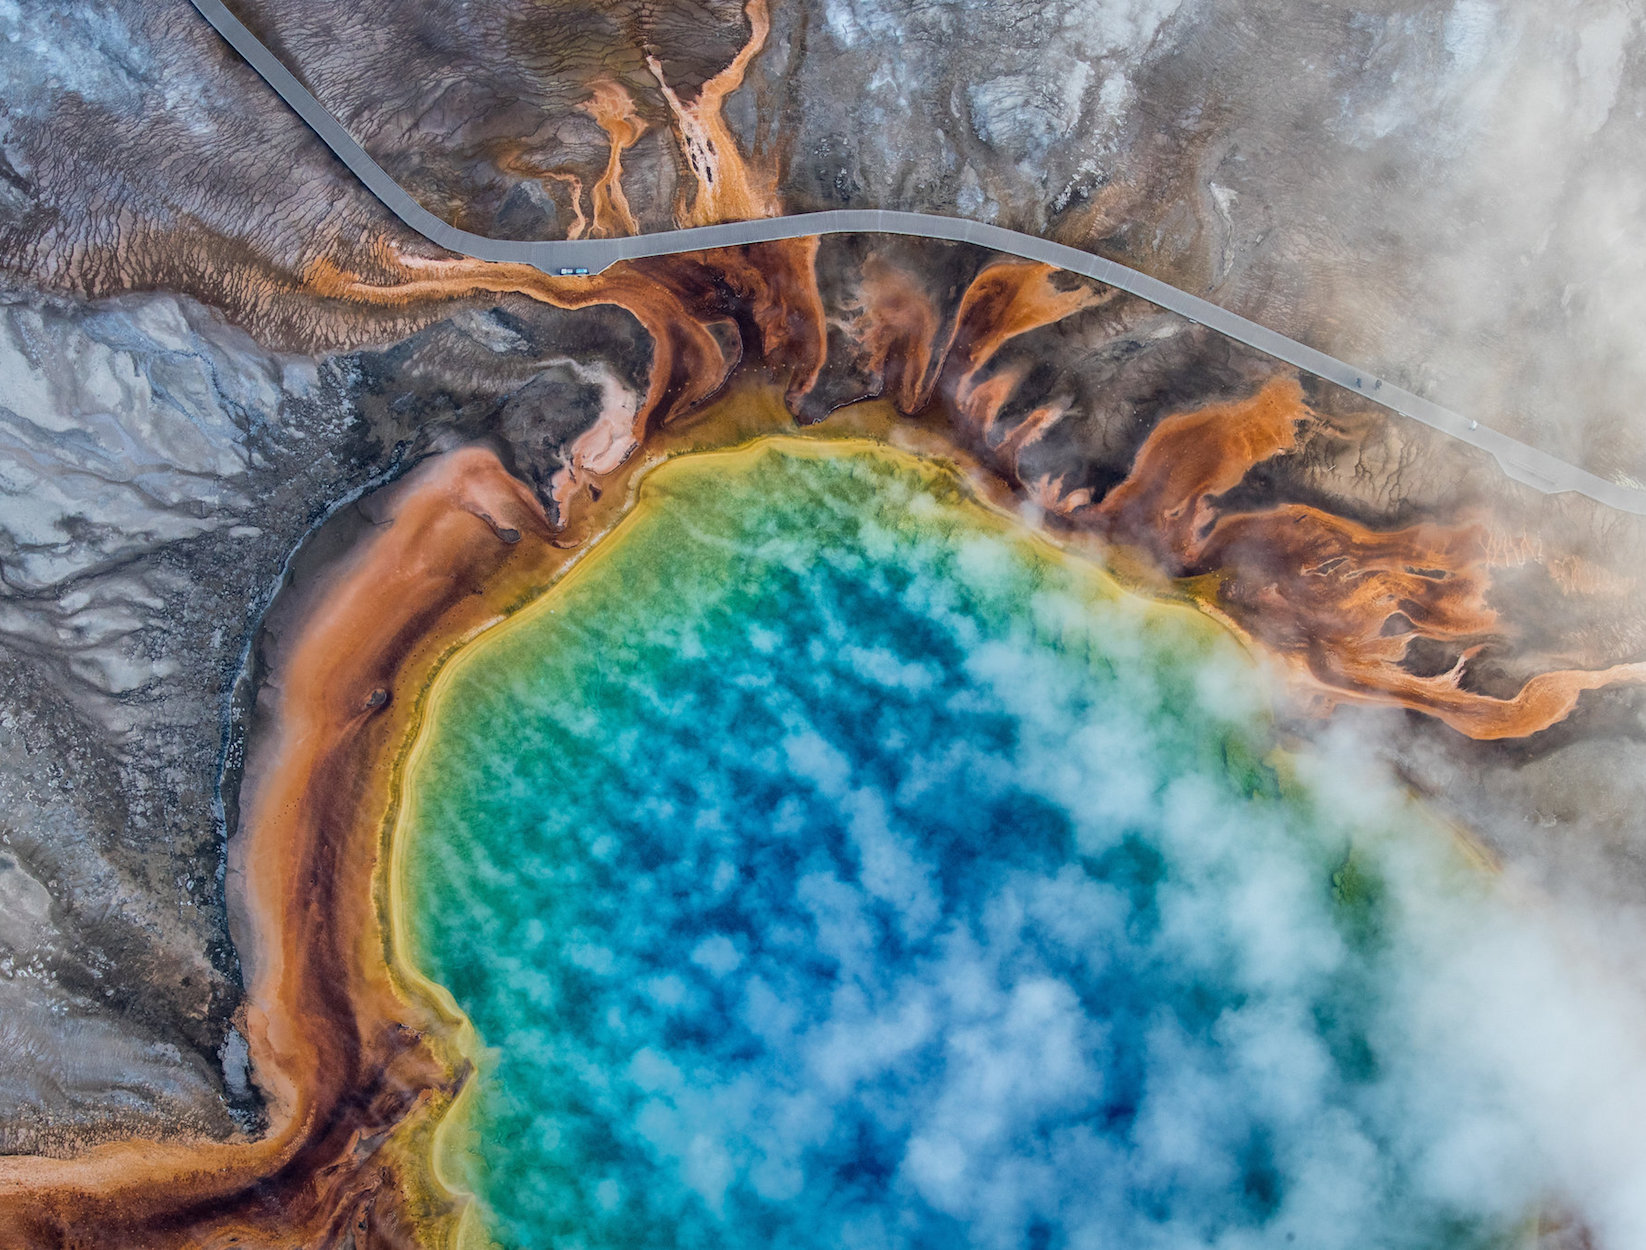 In Yellowstone National Park, Warming Has Brought Rapid Changes.